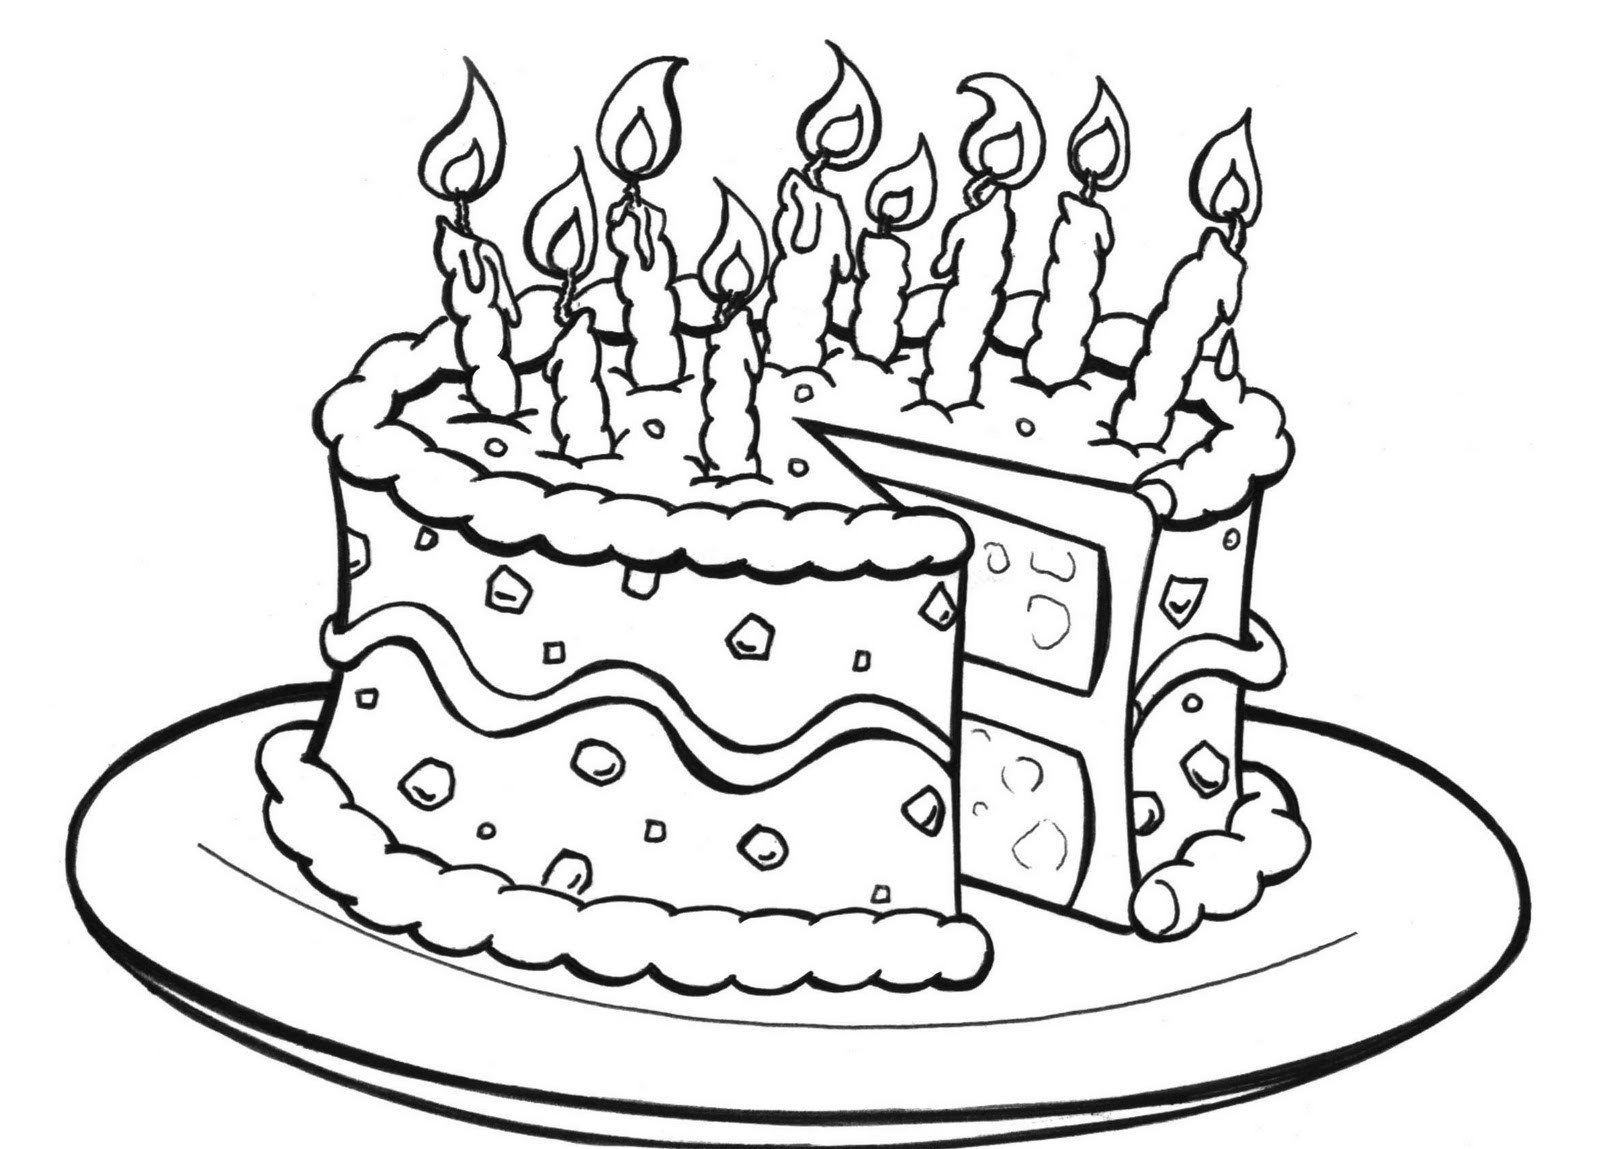 Printable Birthday Coloring Pages Coloring Pages Remarkable Free - Free Printable Birthday Cake